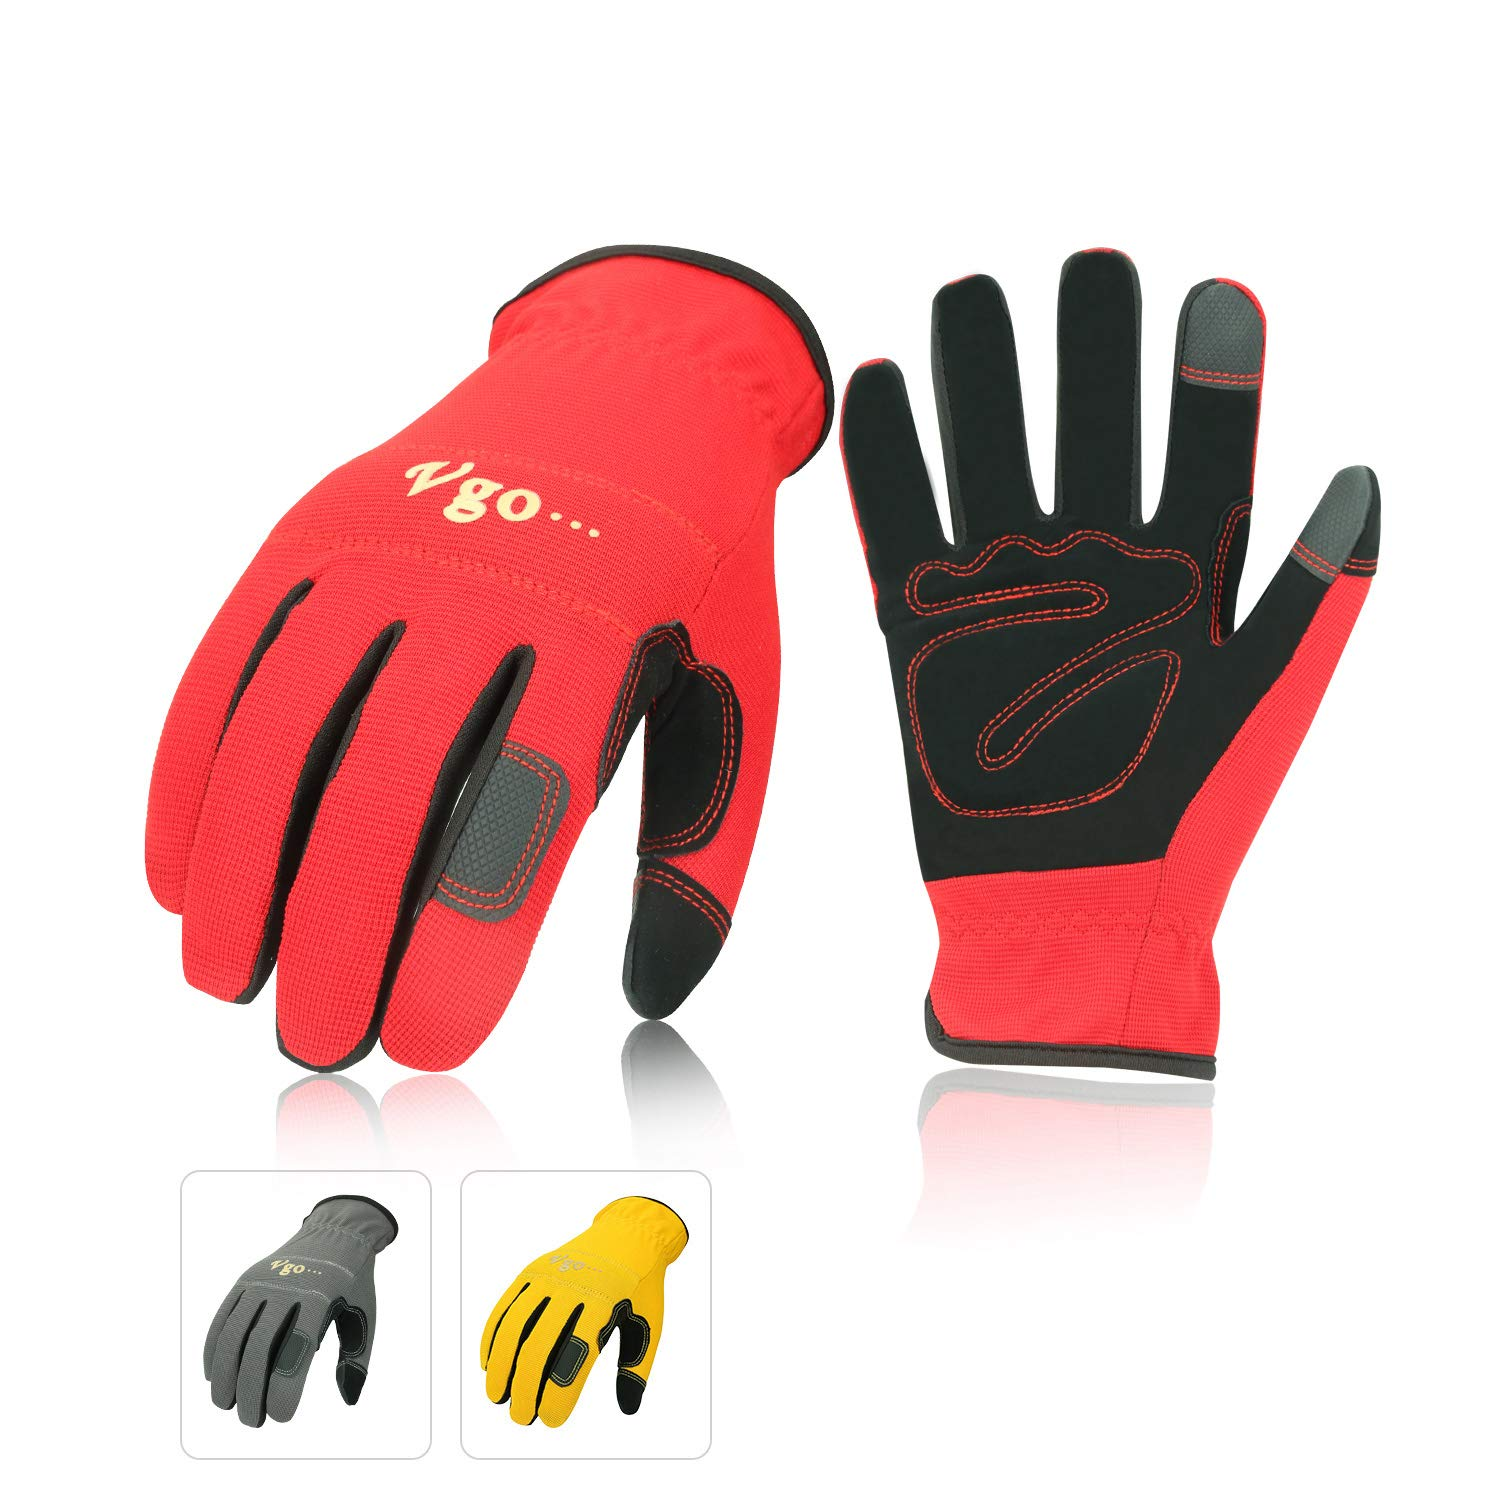 Vgo 3Pairs Nubuck Leather Work Gloves (Size XL, Red+Grey+Yellow, NB7581) Laborsing Safety Products Inc.